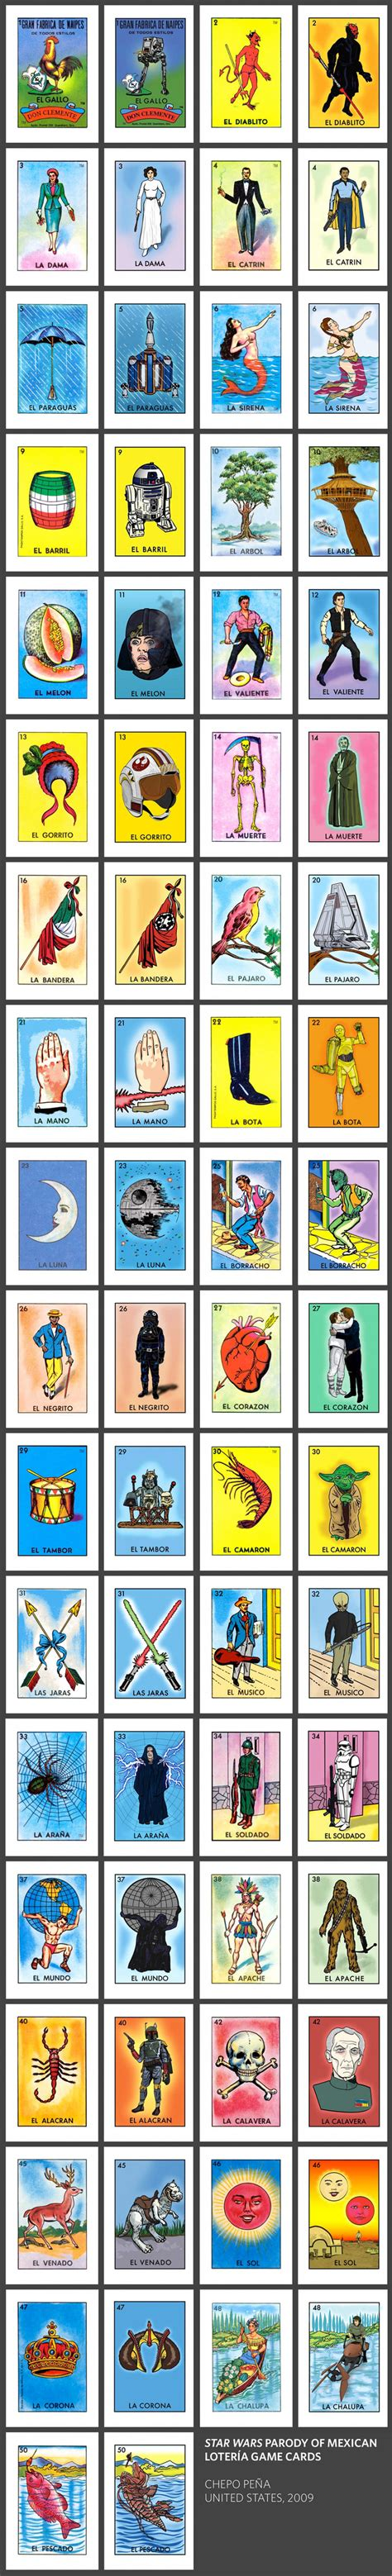 geek art star wars parody  mexican loteria cards